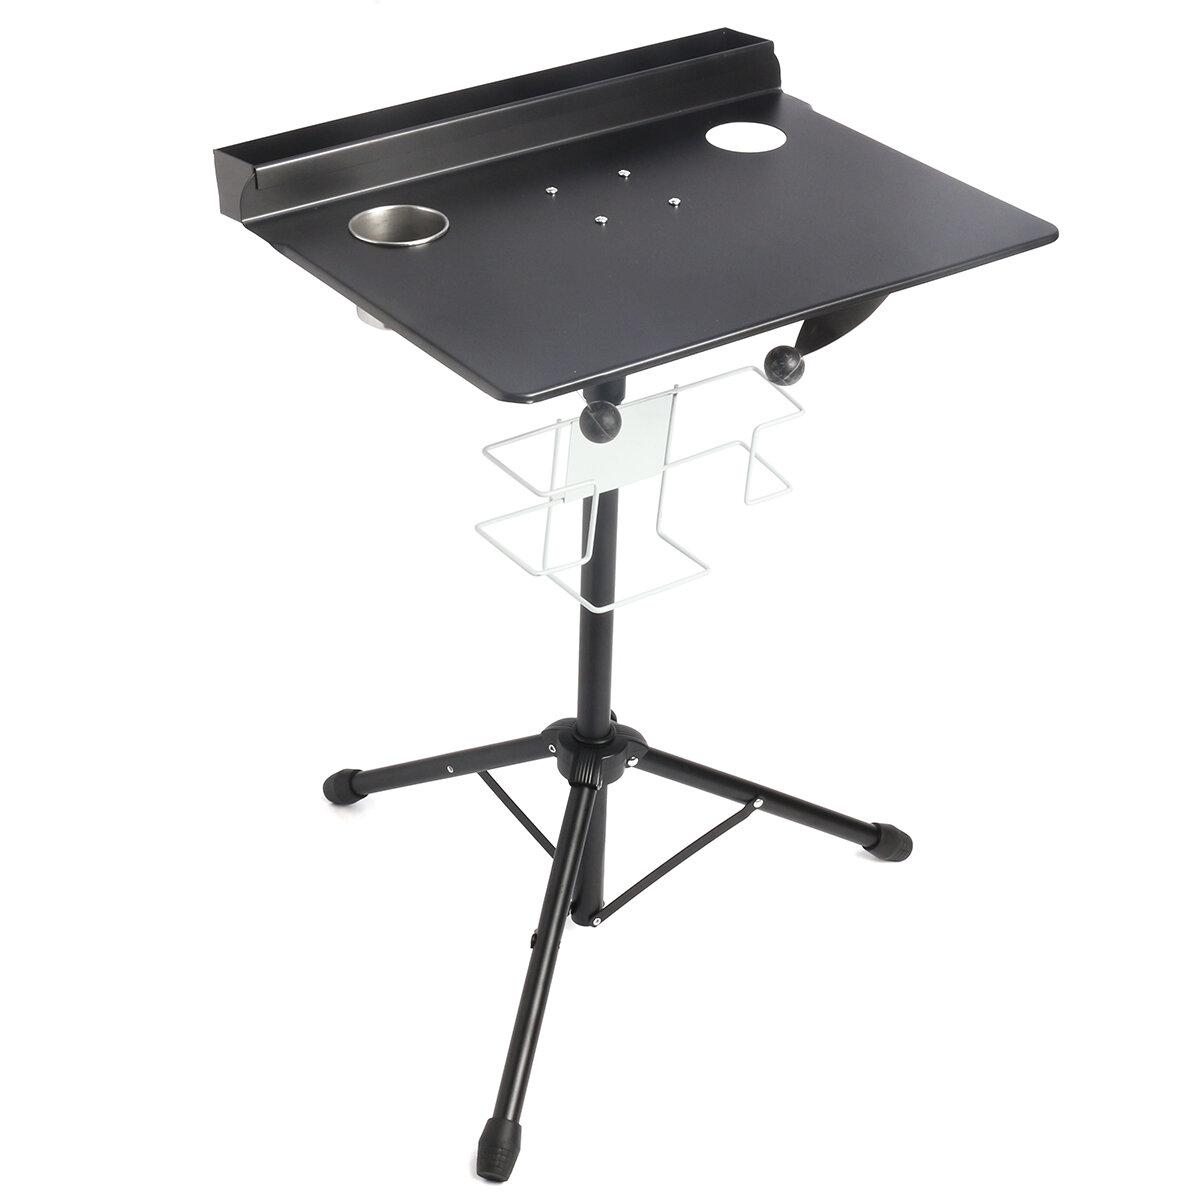 Adjustable Tattoo Work Desk Table Workstation Compact Stand Professional Station Supply